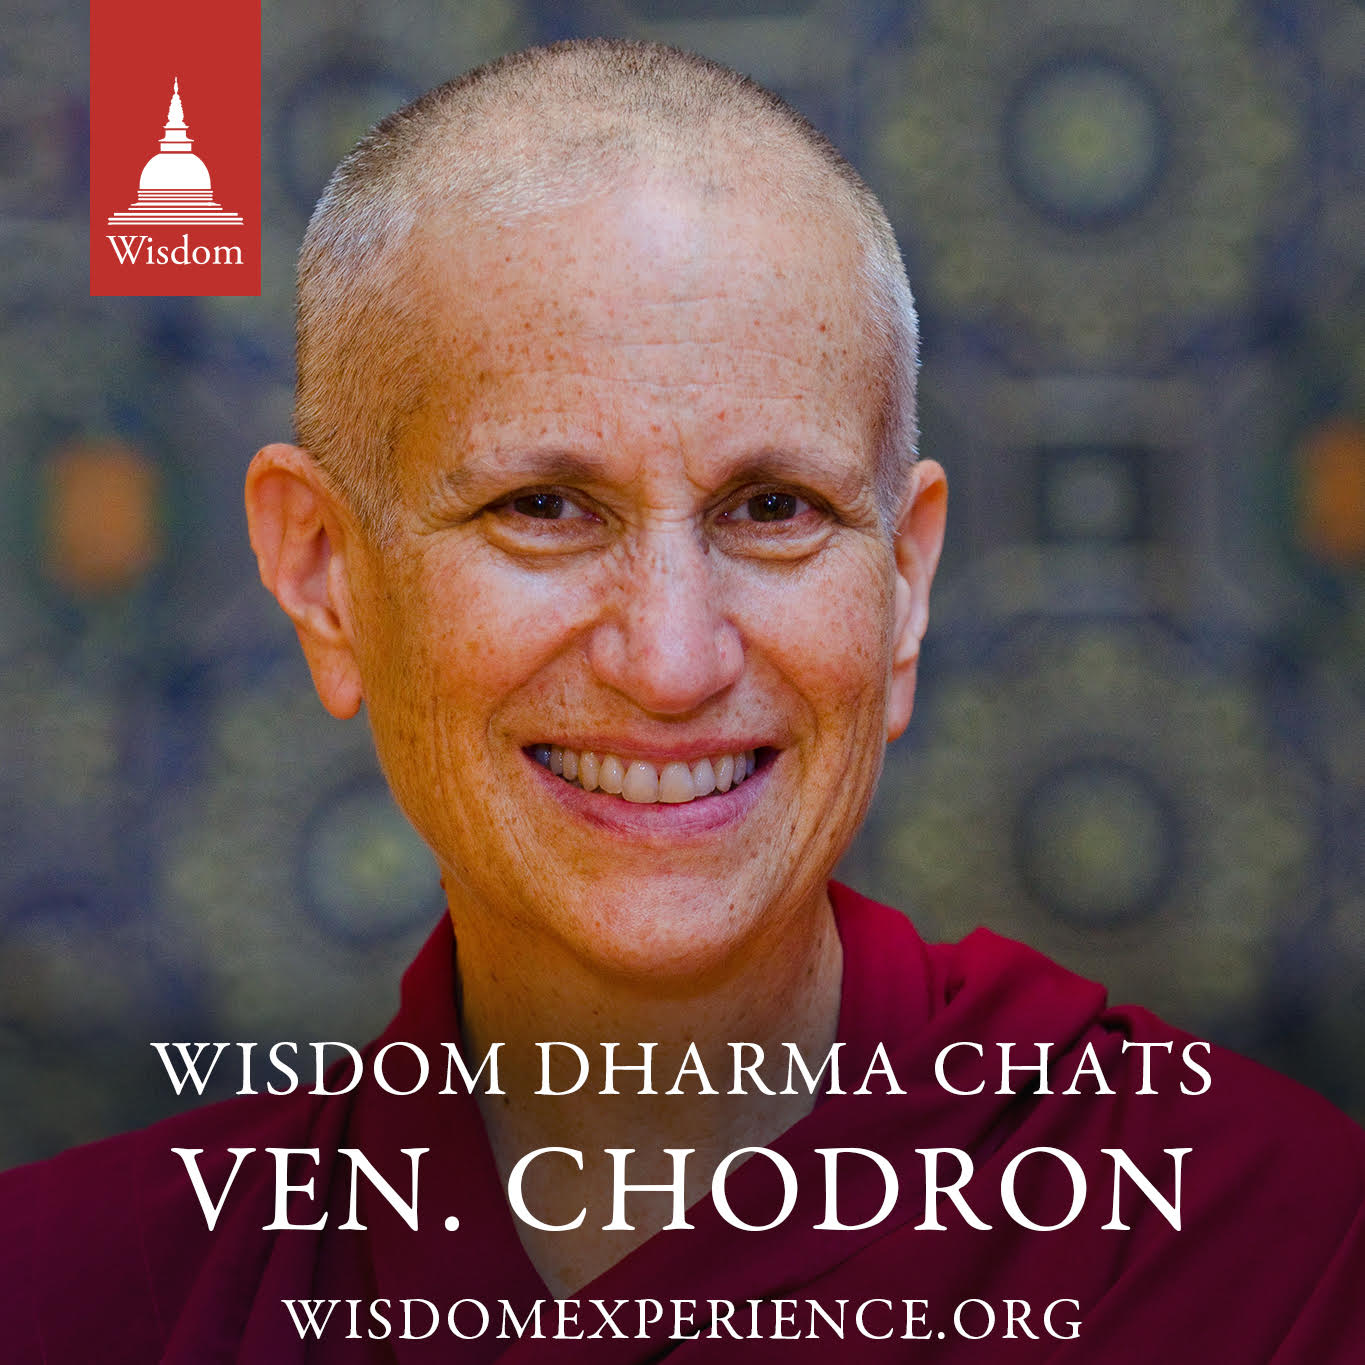 Online: Wisdom Dharma Chat with Venerable Thubten Chodron